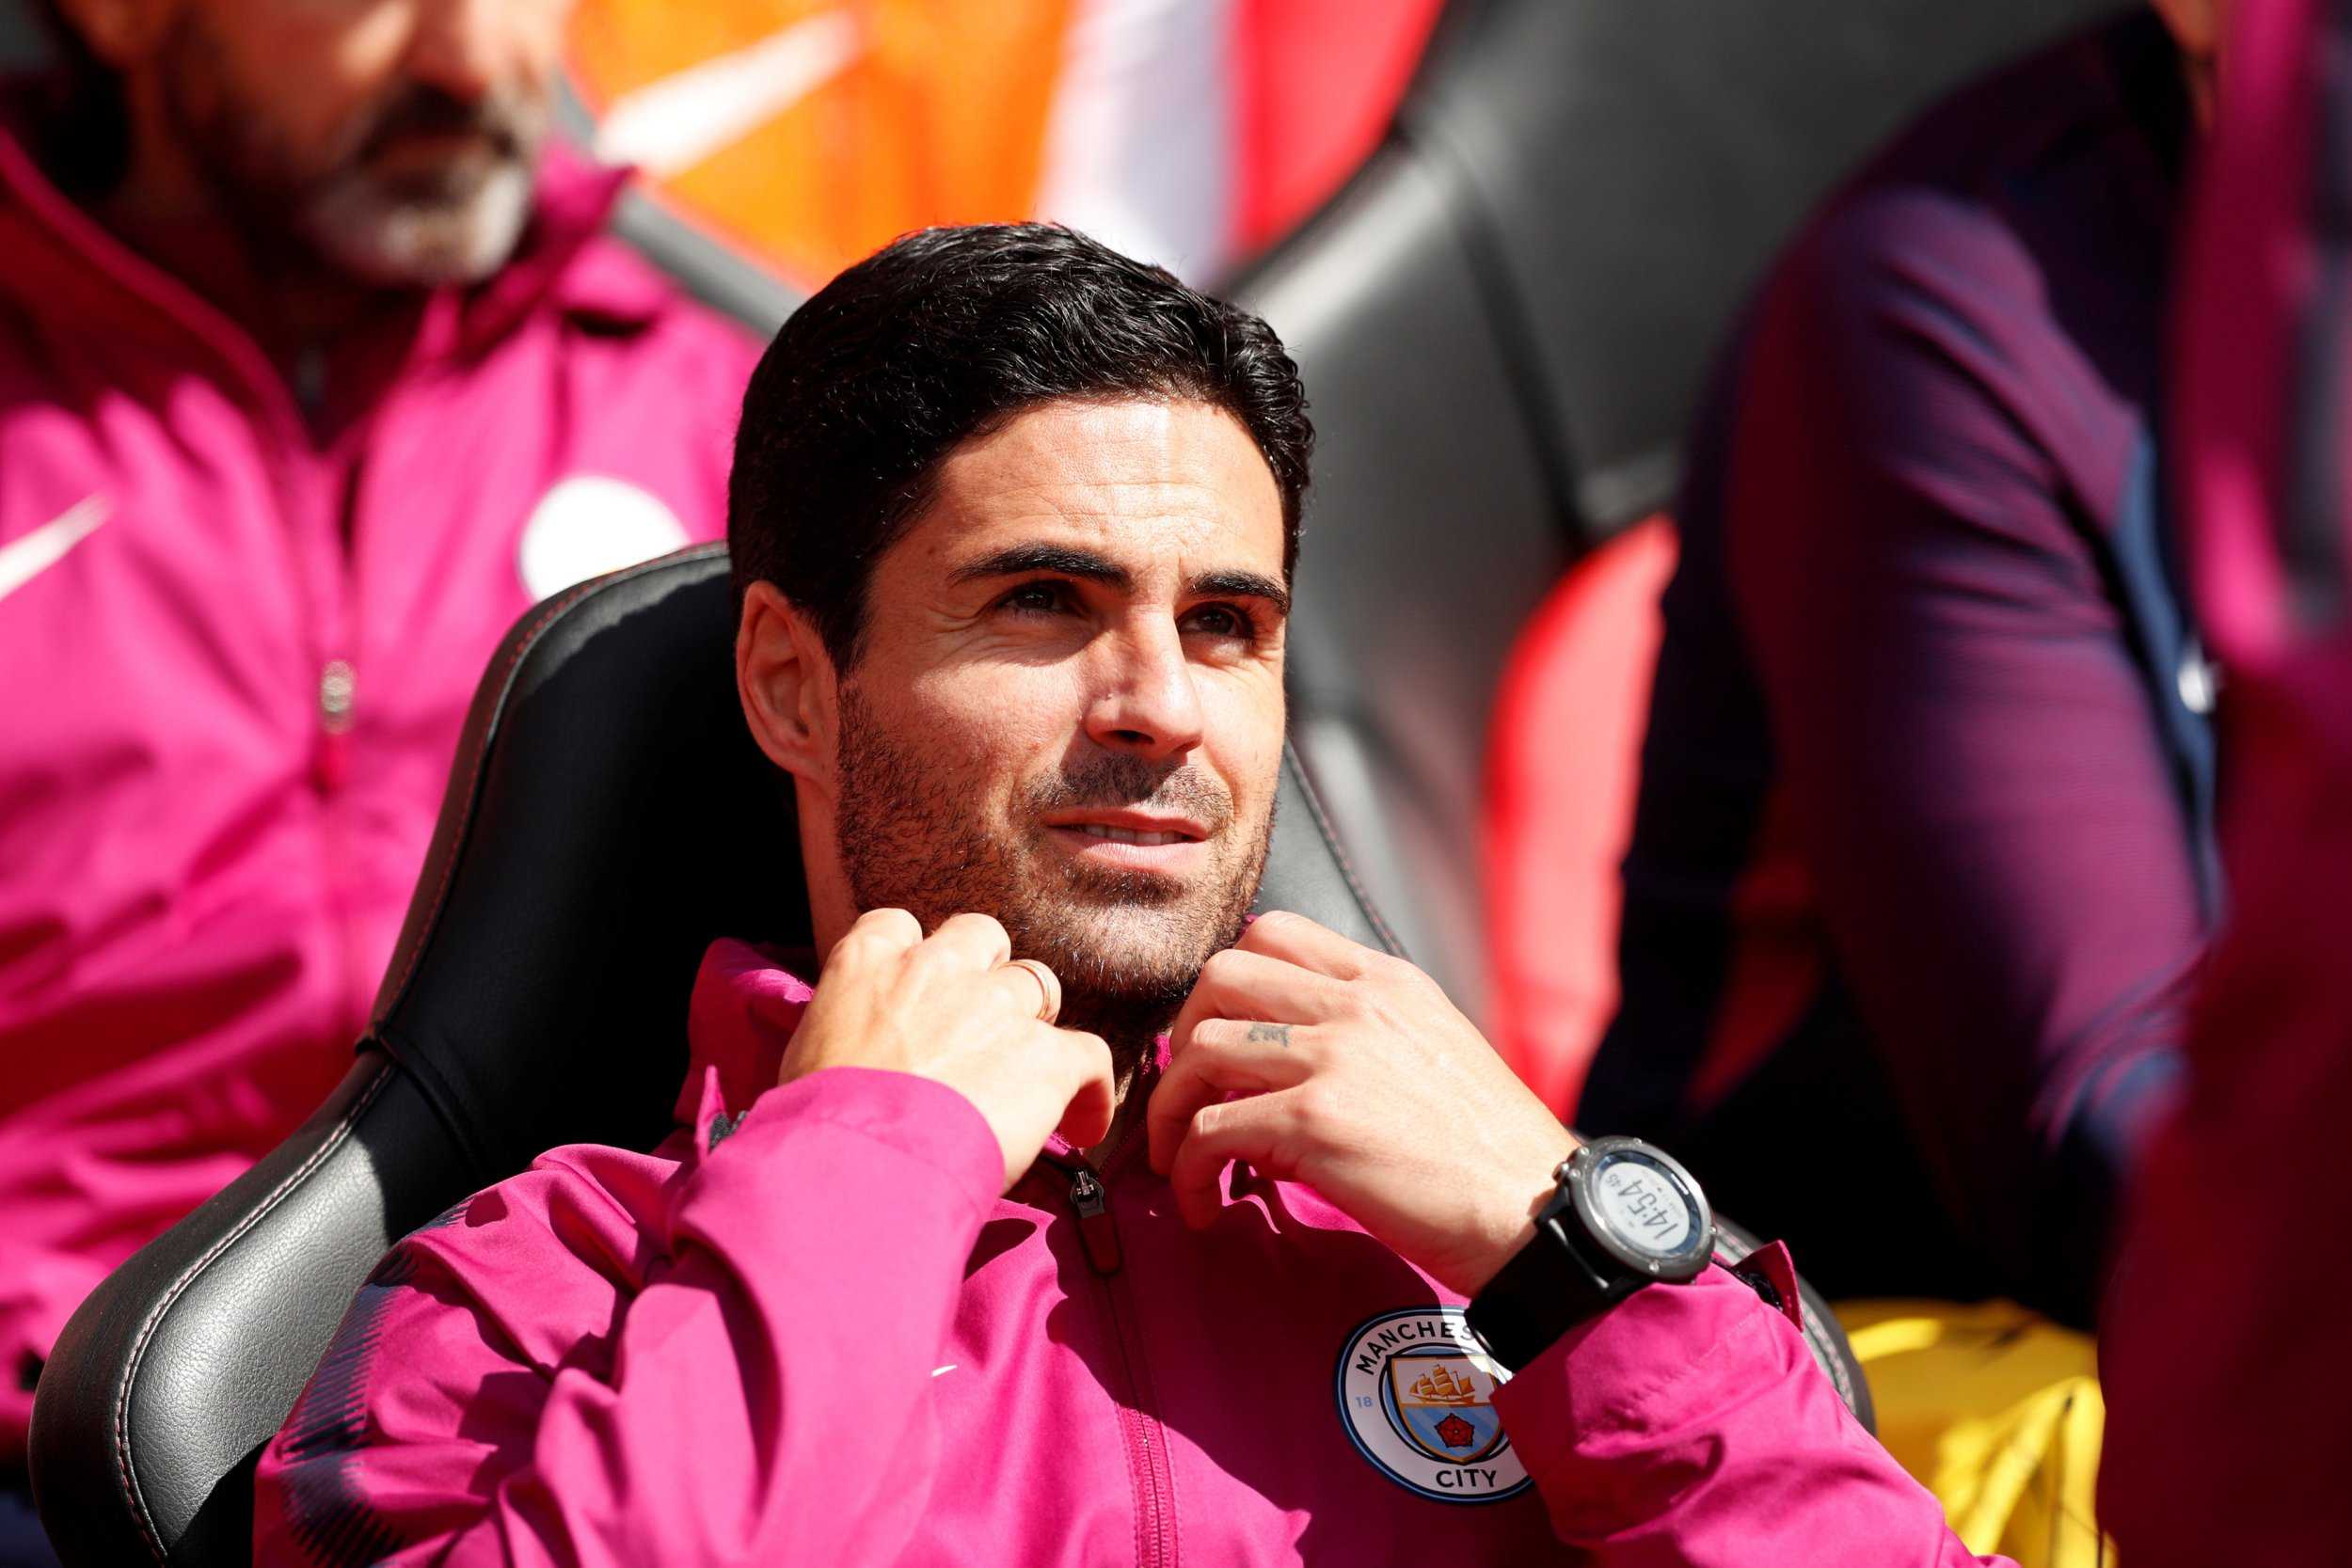 Mikel Arteta clear favourite to be the next Arsenal manager after Max Allegri rules himself out